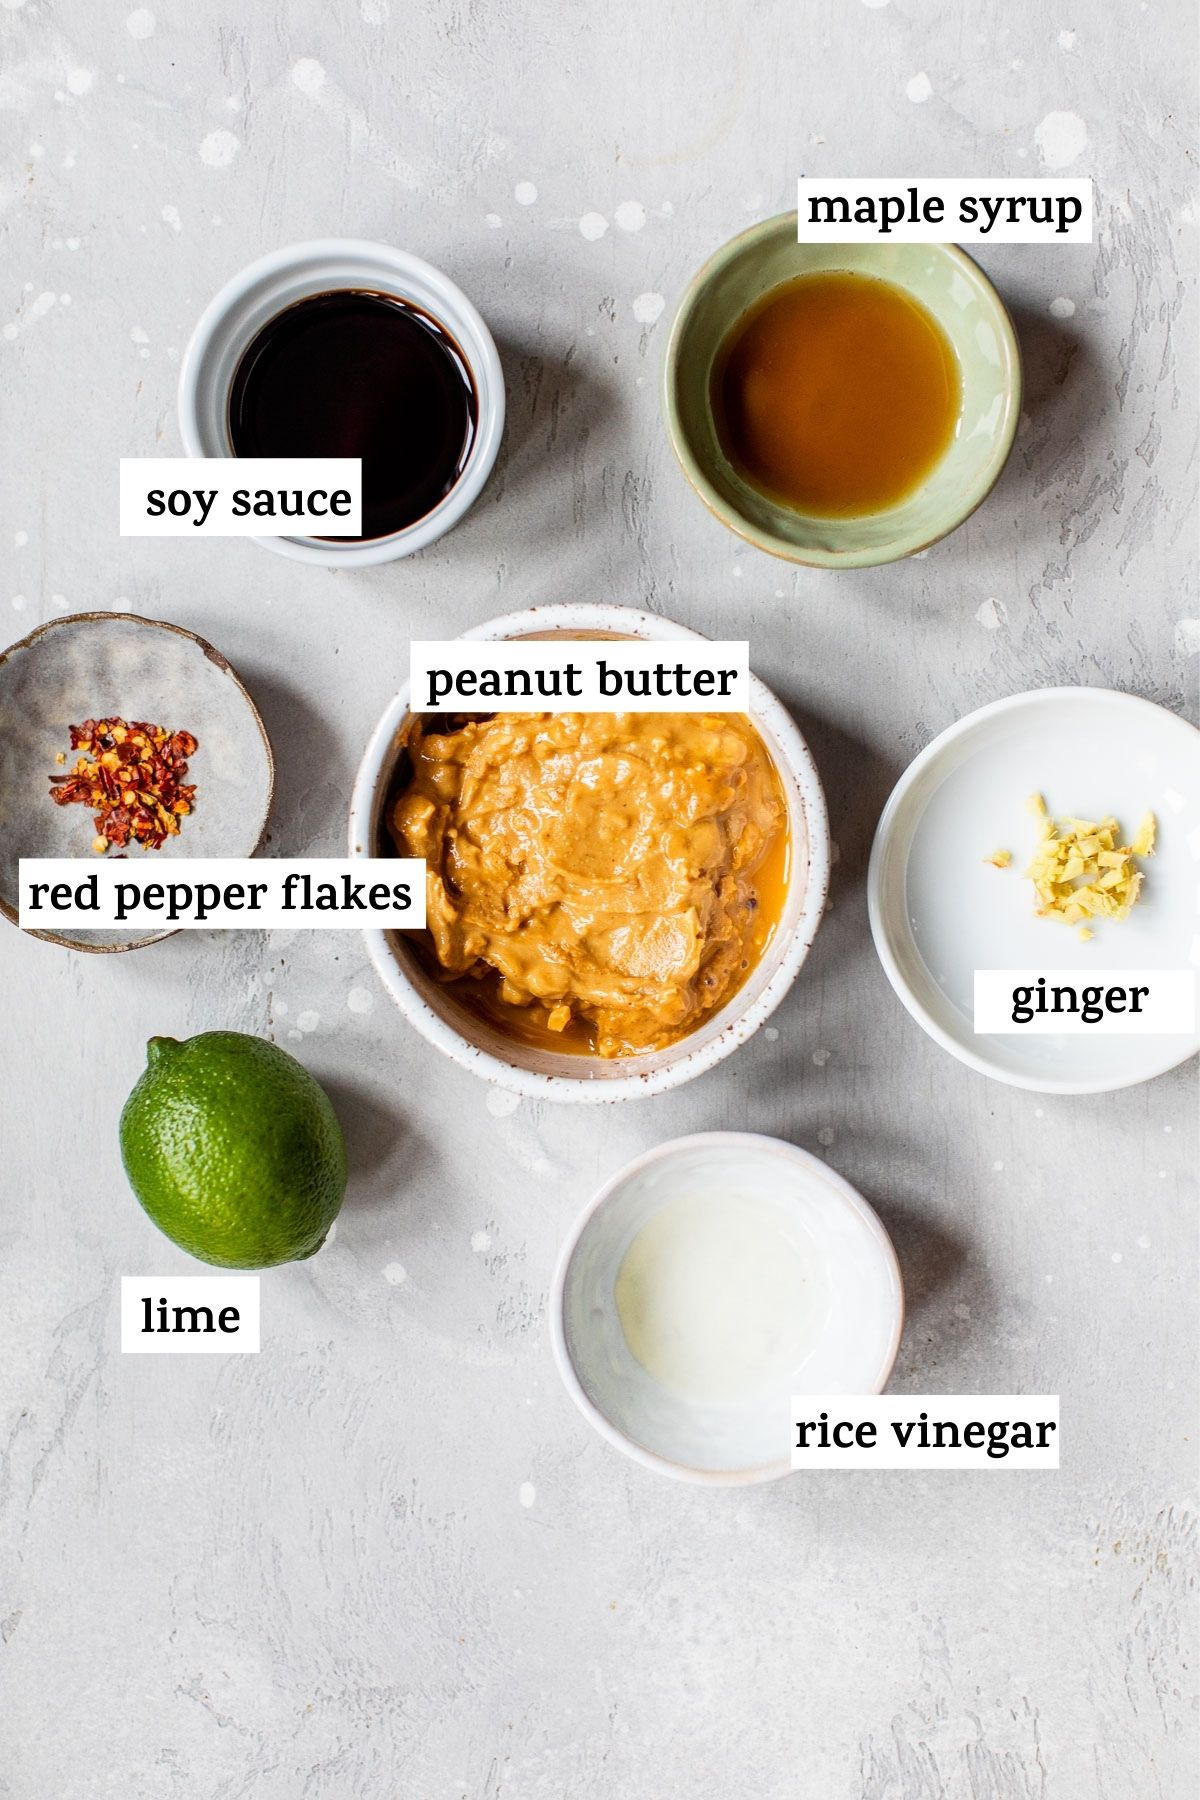 ingredients to make peanut sauce with text overlay